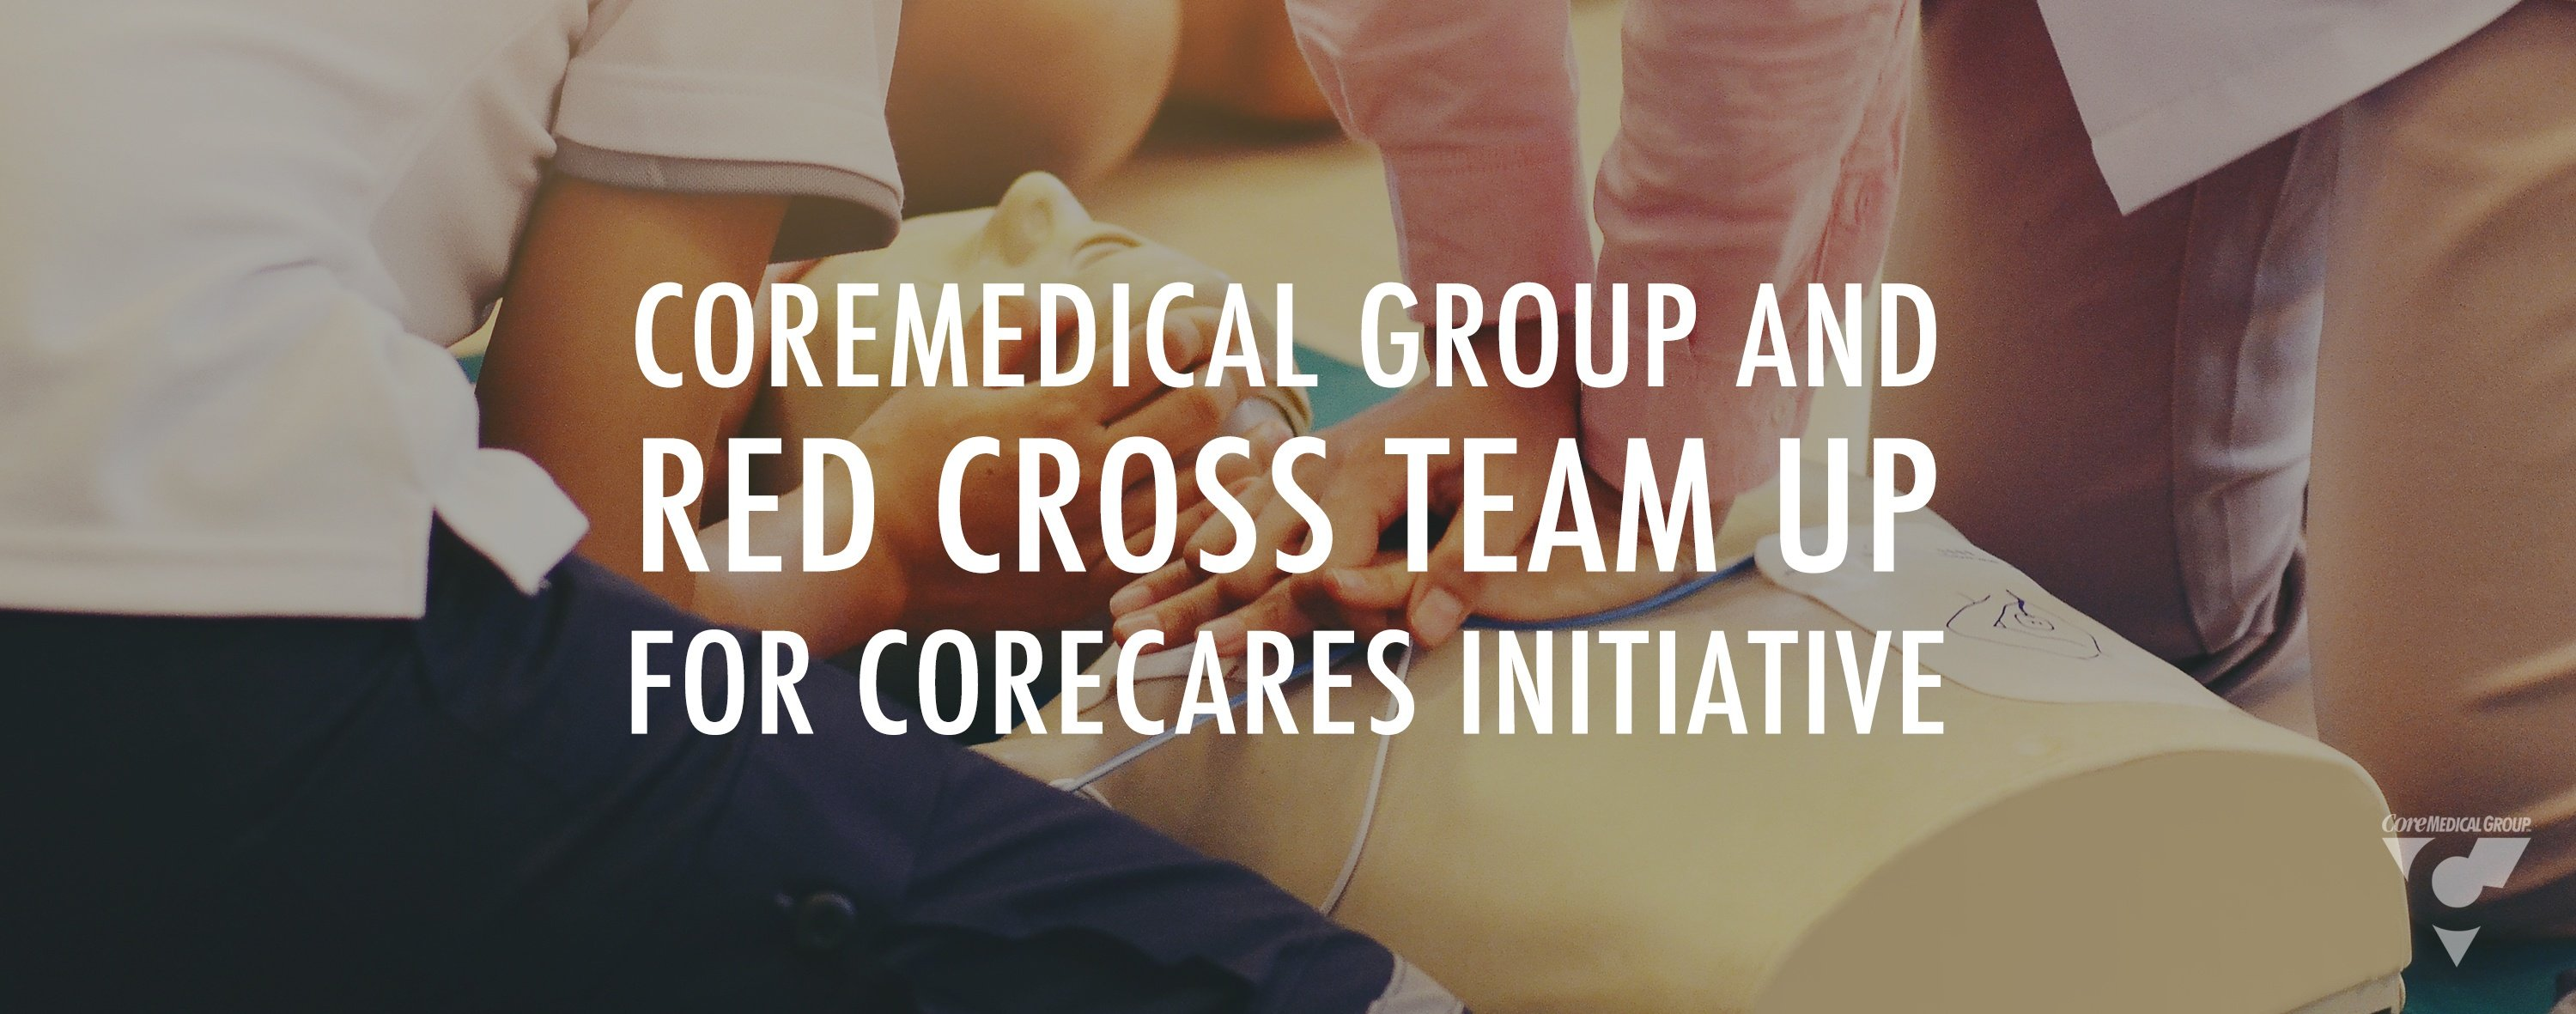 Core medical group and red cross team up for core care initiative employees giving back blood drive